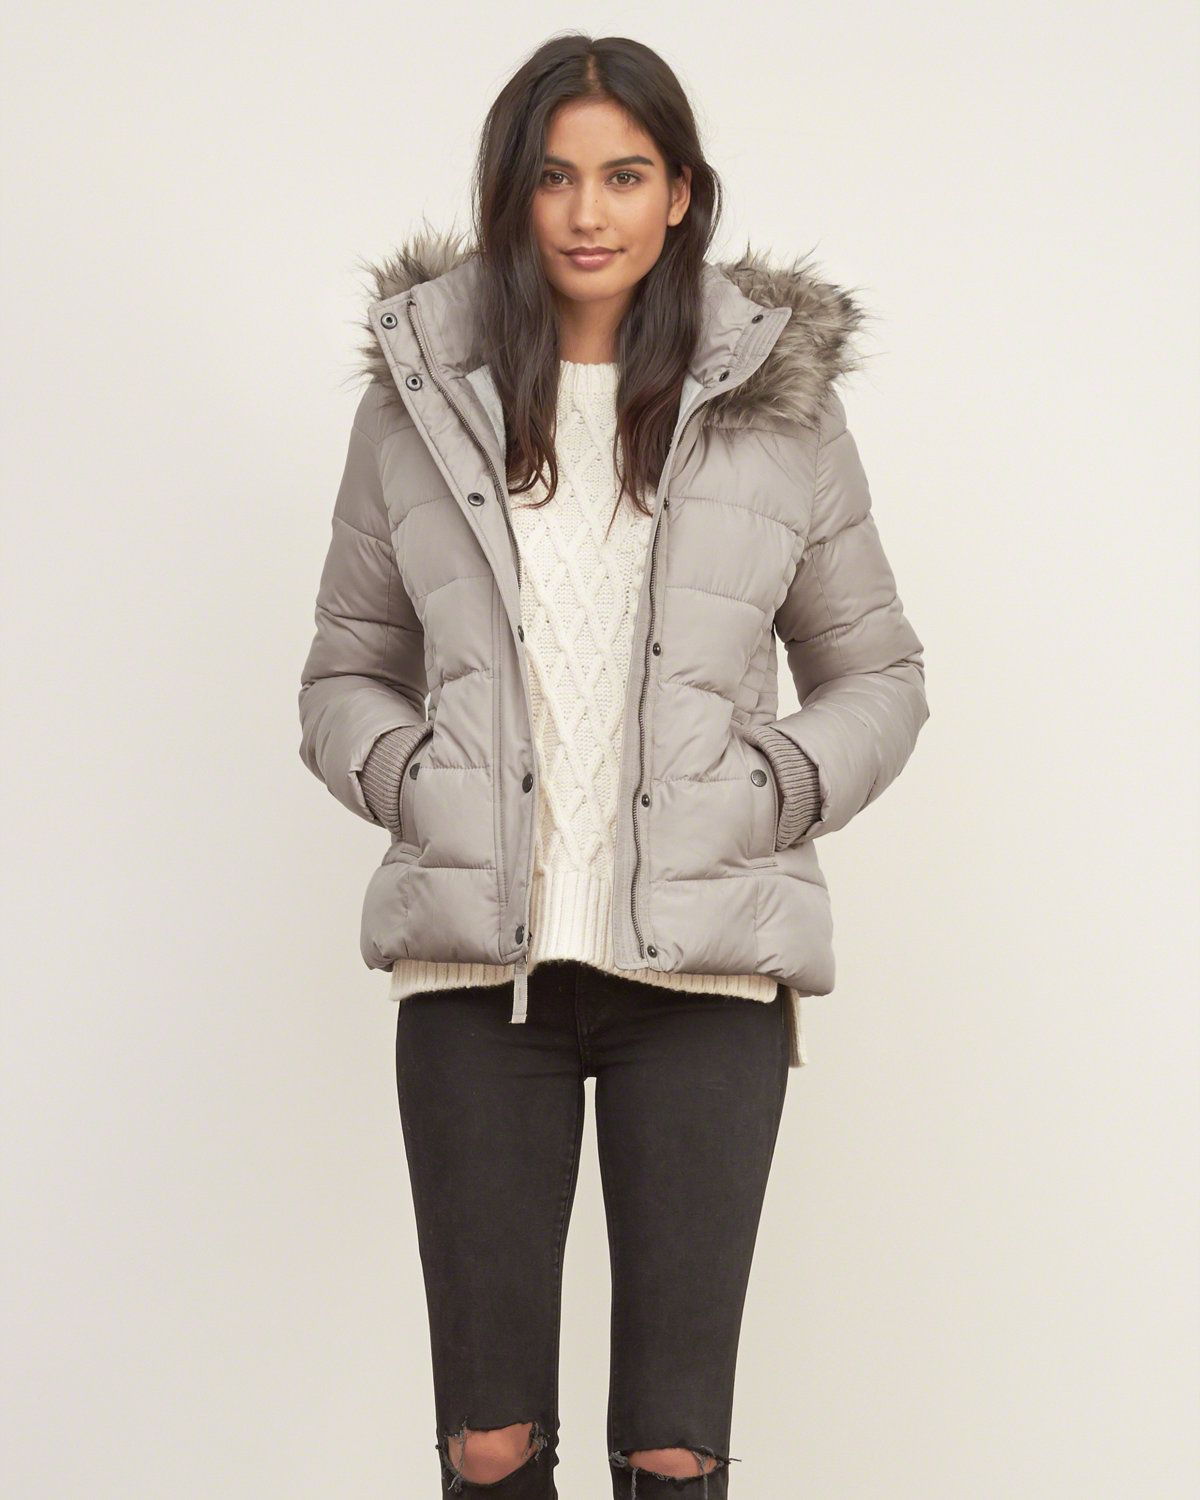 Womens A&F Premium Puffer Jacket Womens Outerwear